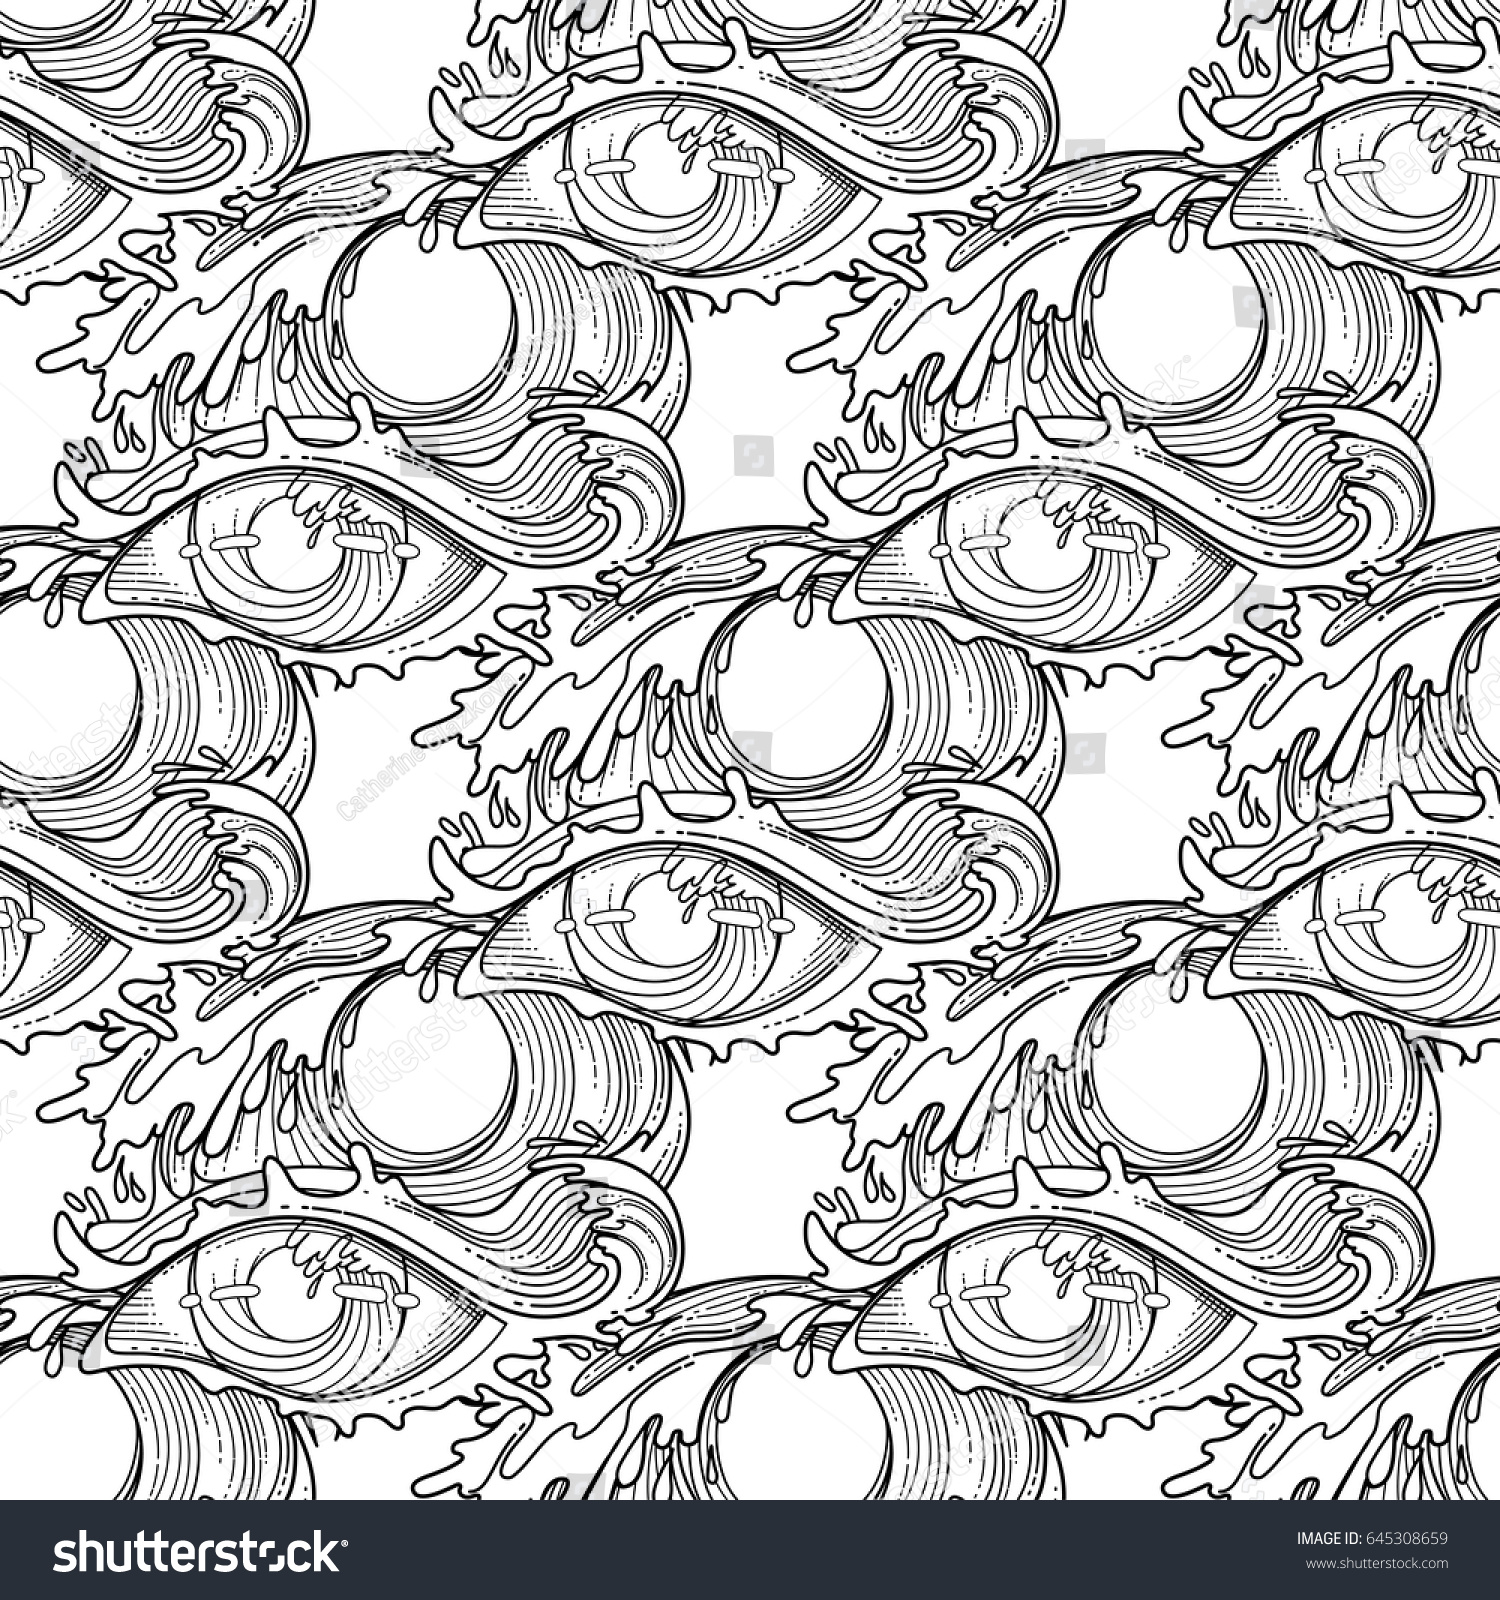 abstract graphic eye decorated with storm waves sacred geometry coloring book page for adults - Sacred Geometry Coloring Book